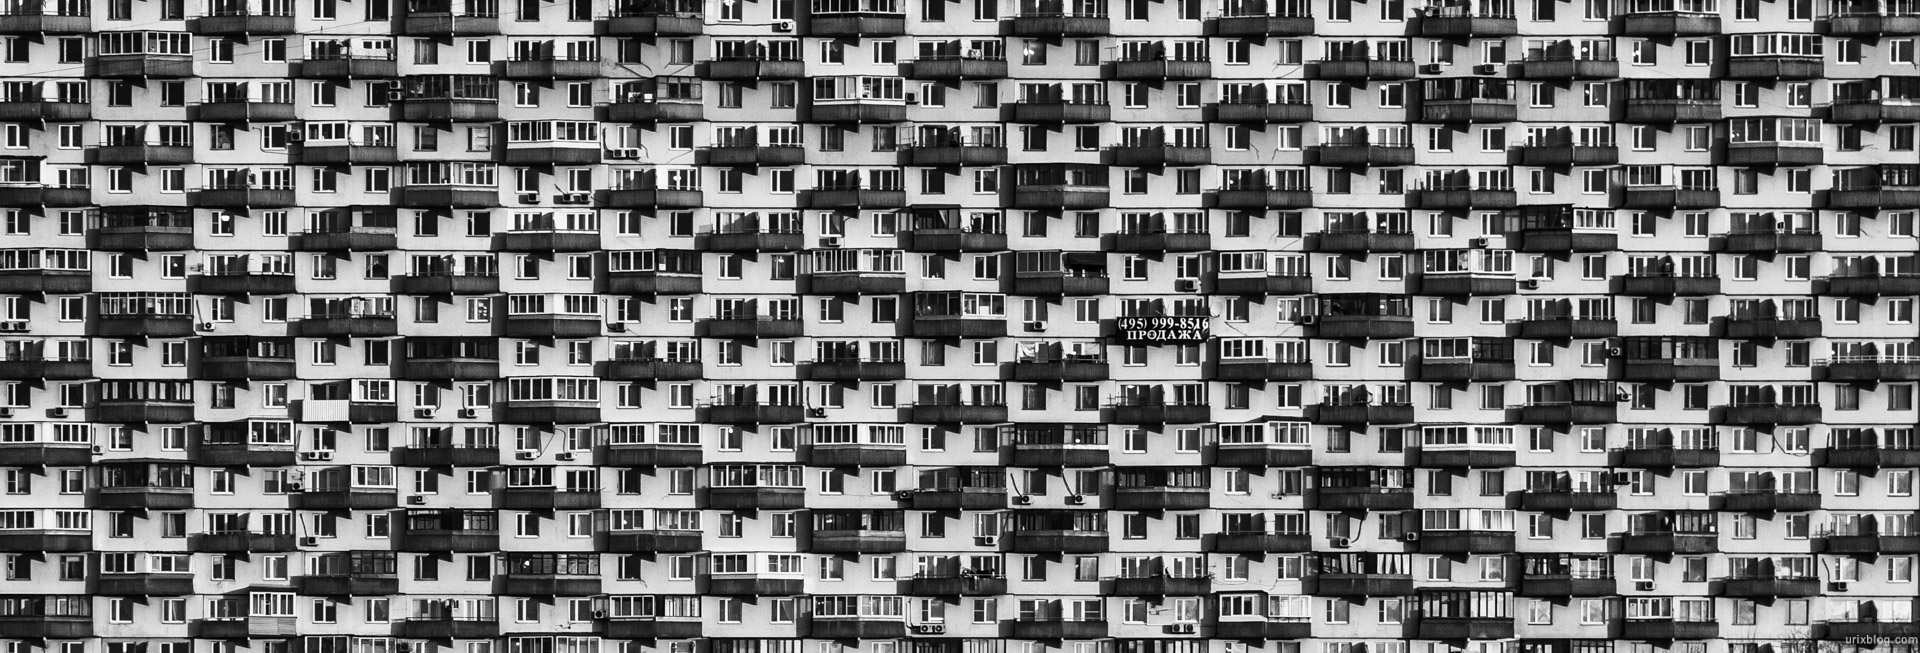 2014, Prospect Mira, Peace avenue, 184, house, VDNKh, Moscow, USSR, Russia, panorama, windows, BW, black and white